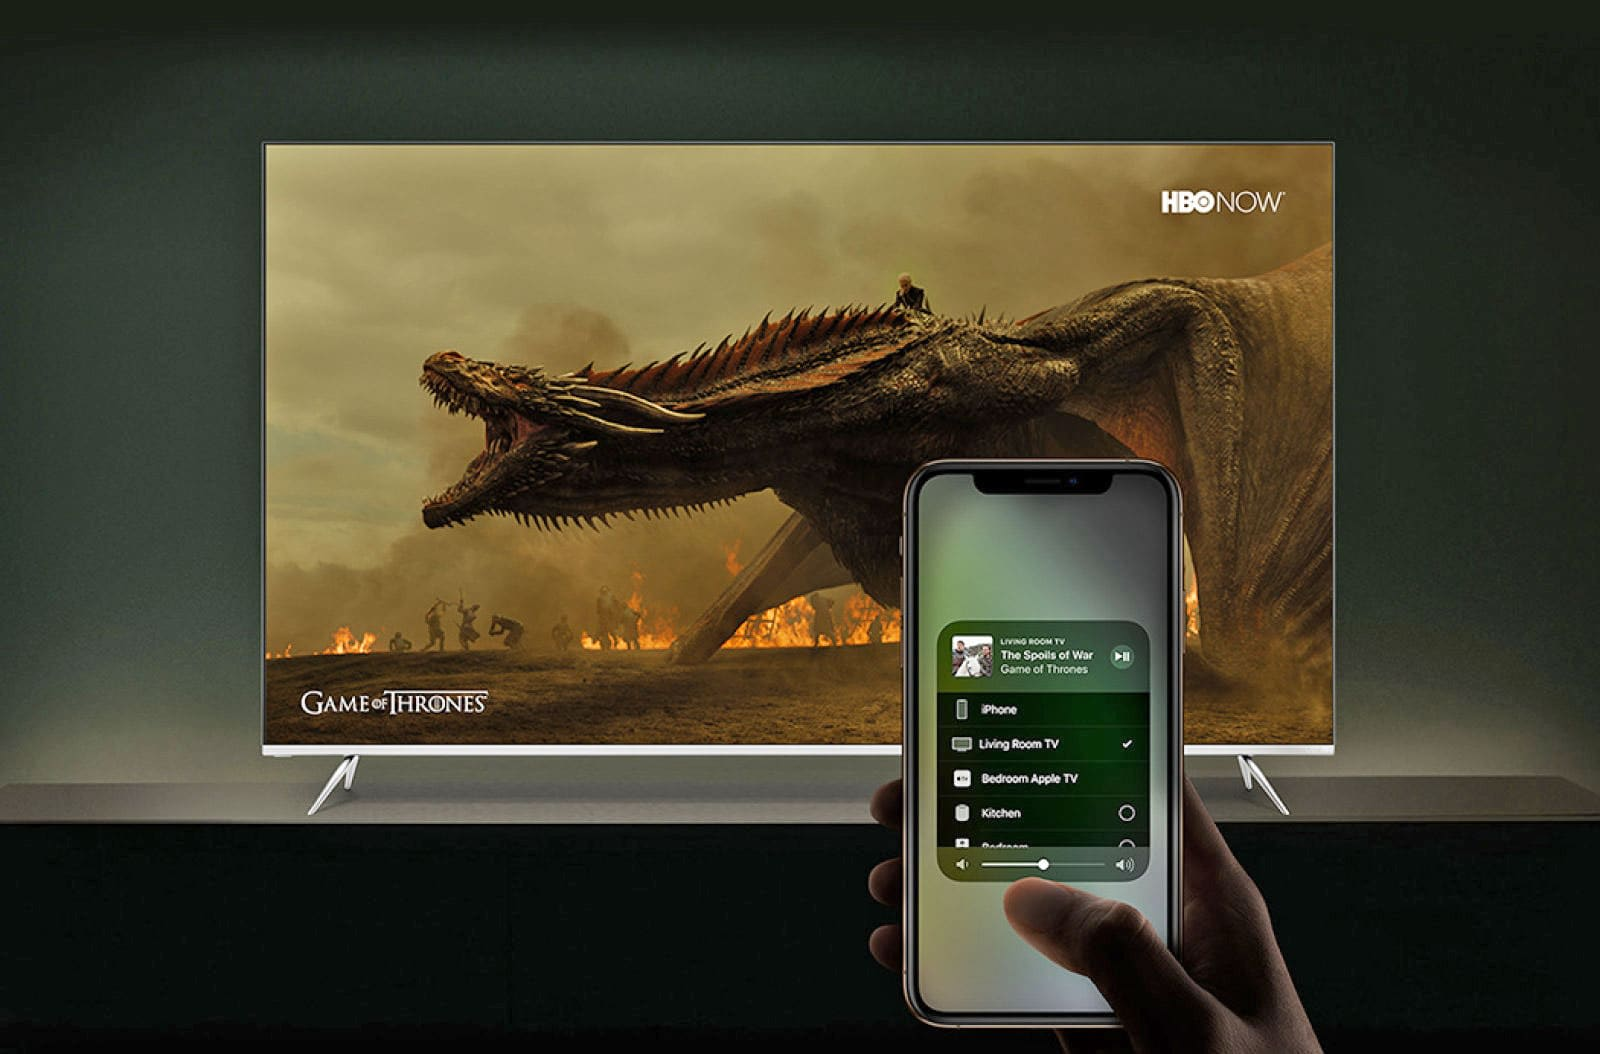 Vizio will soon test SmartCast 3 0 with AirPlay 2 support